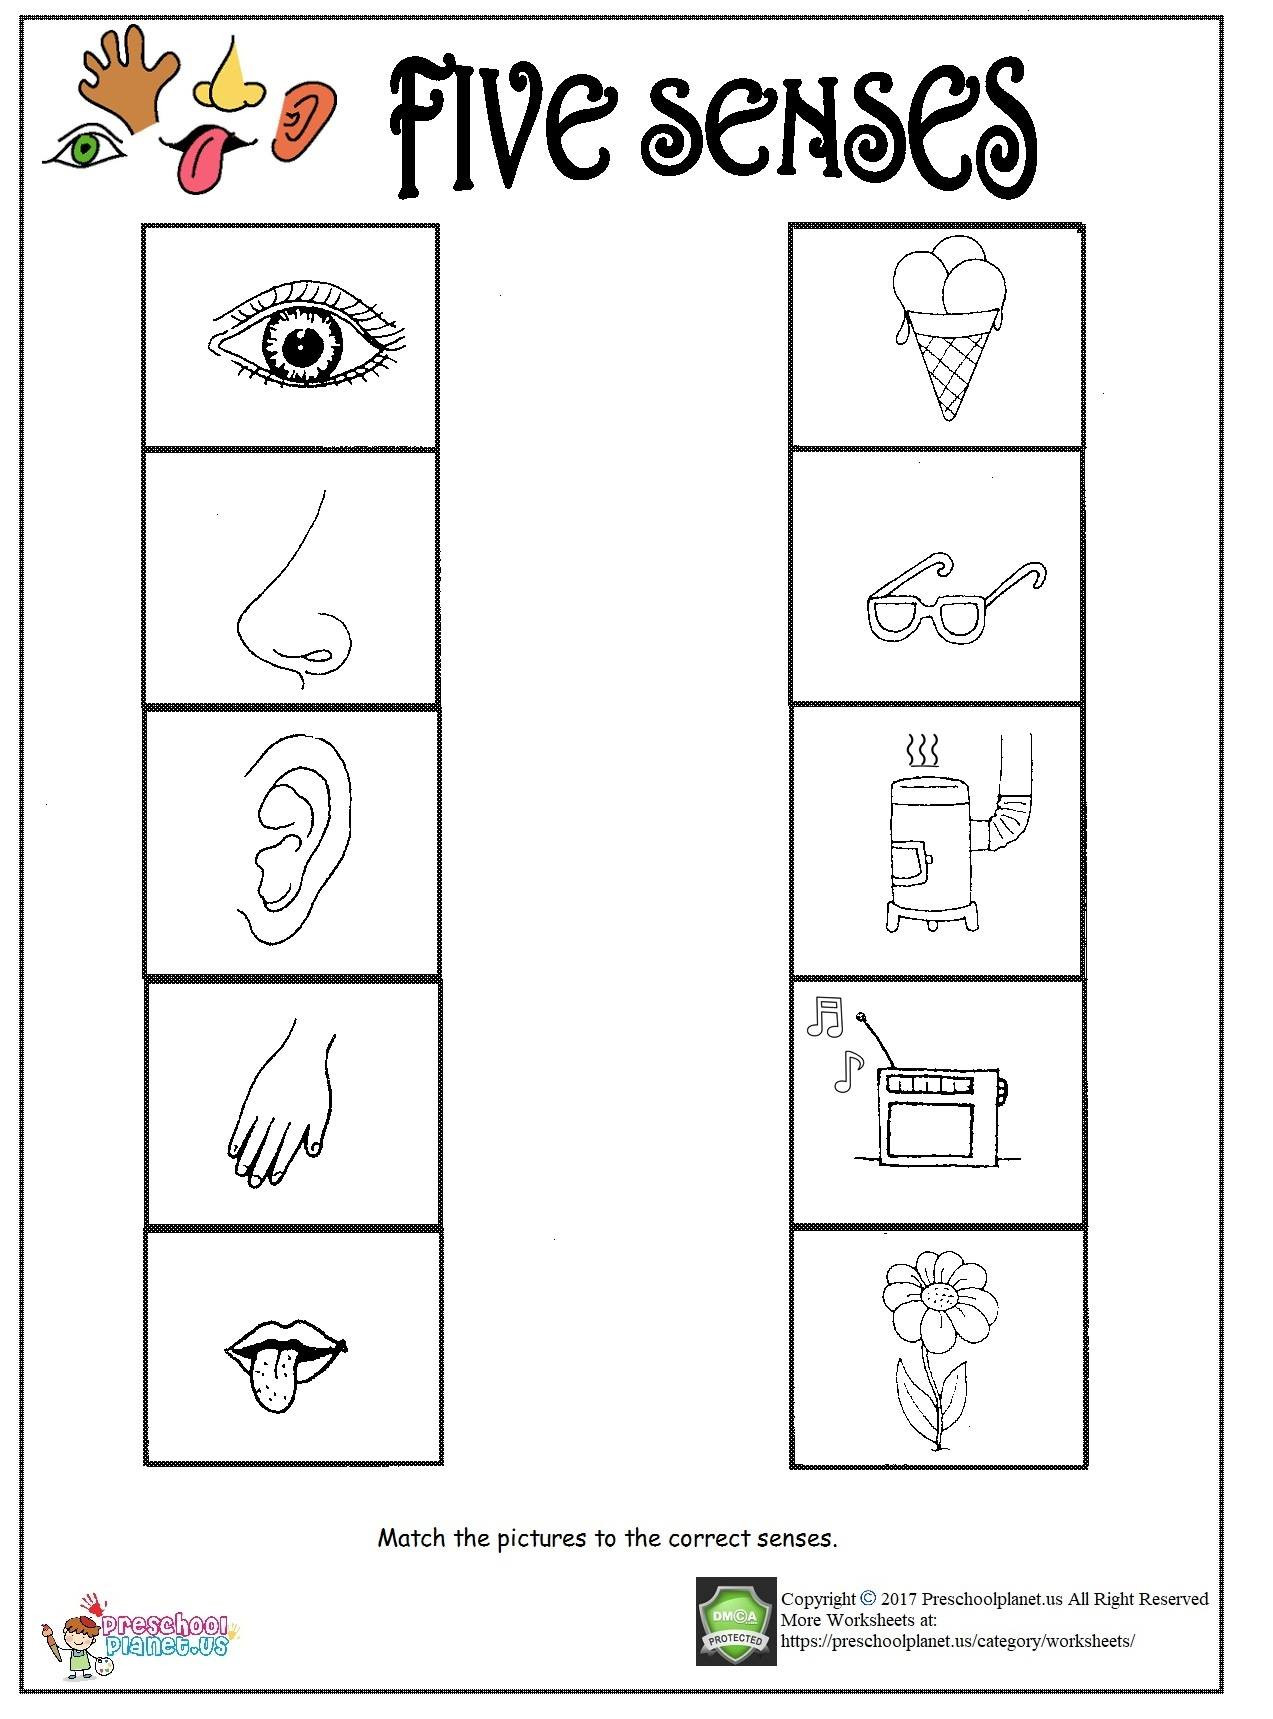 5 Senses Worksheets Preschool Printable Five Senses Worksheet – Preschoolplanet